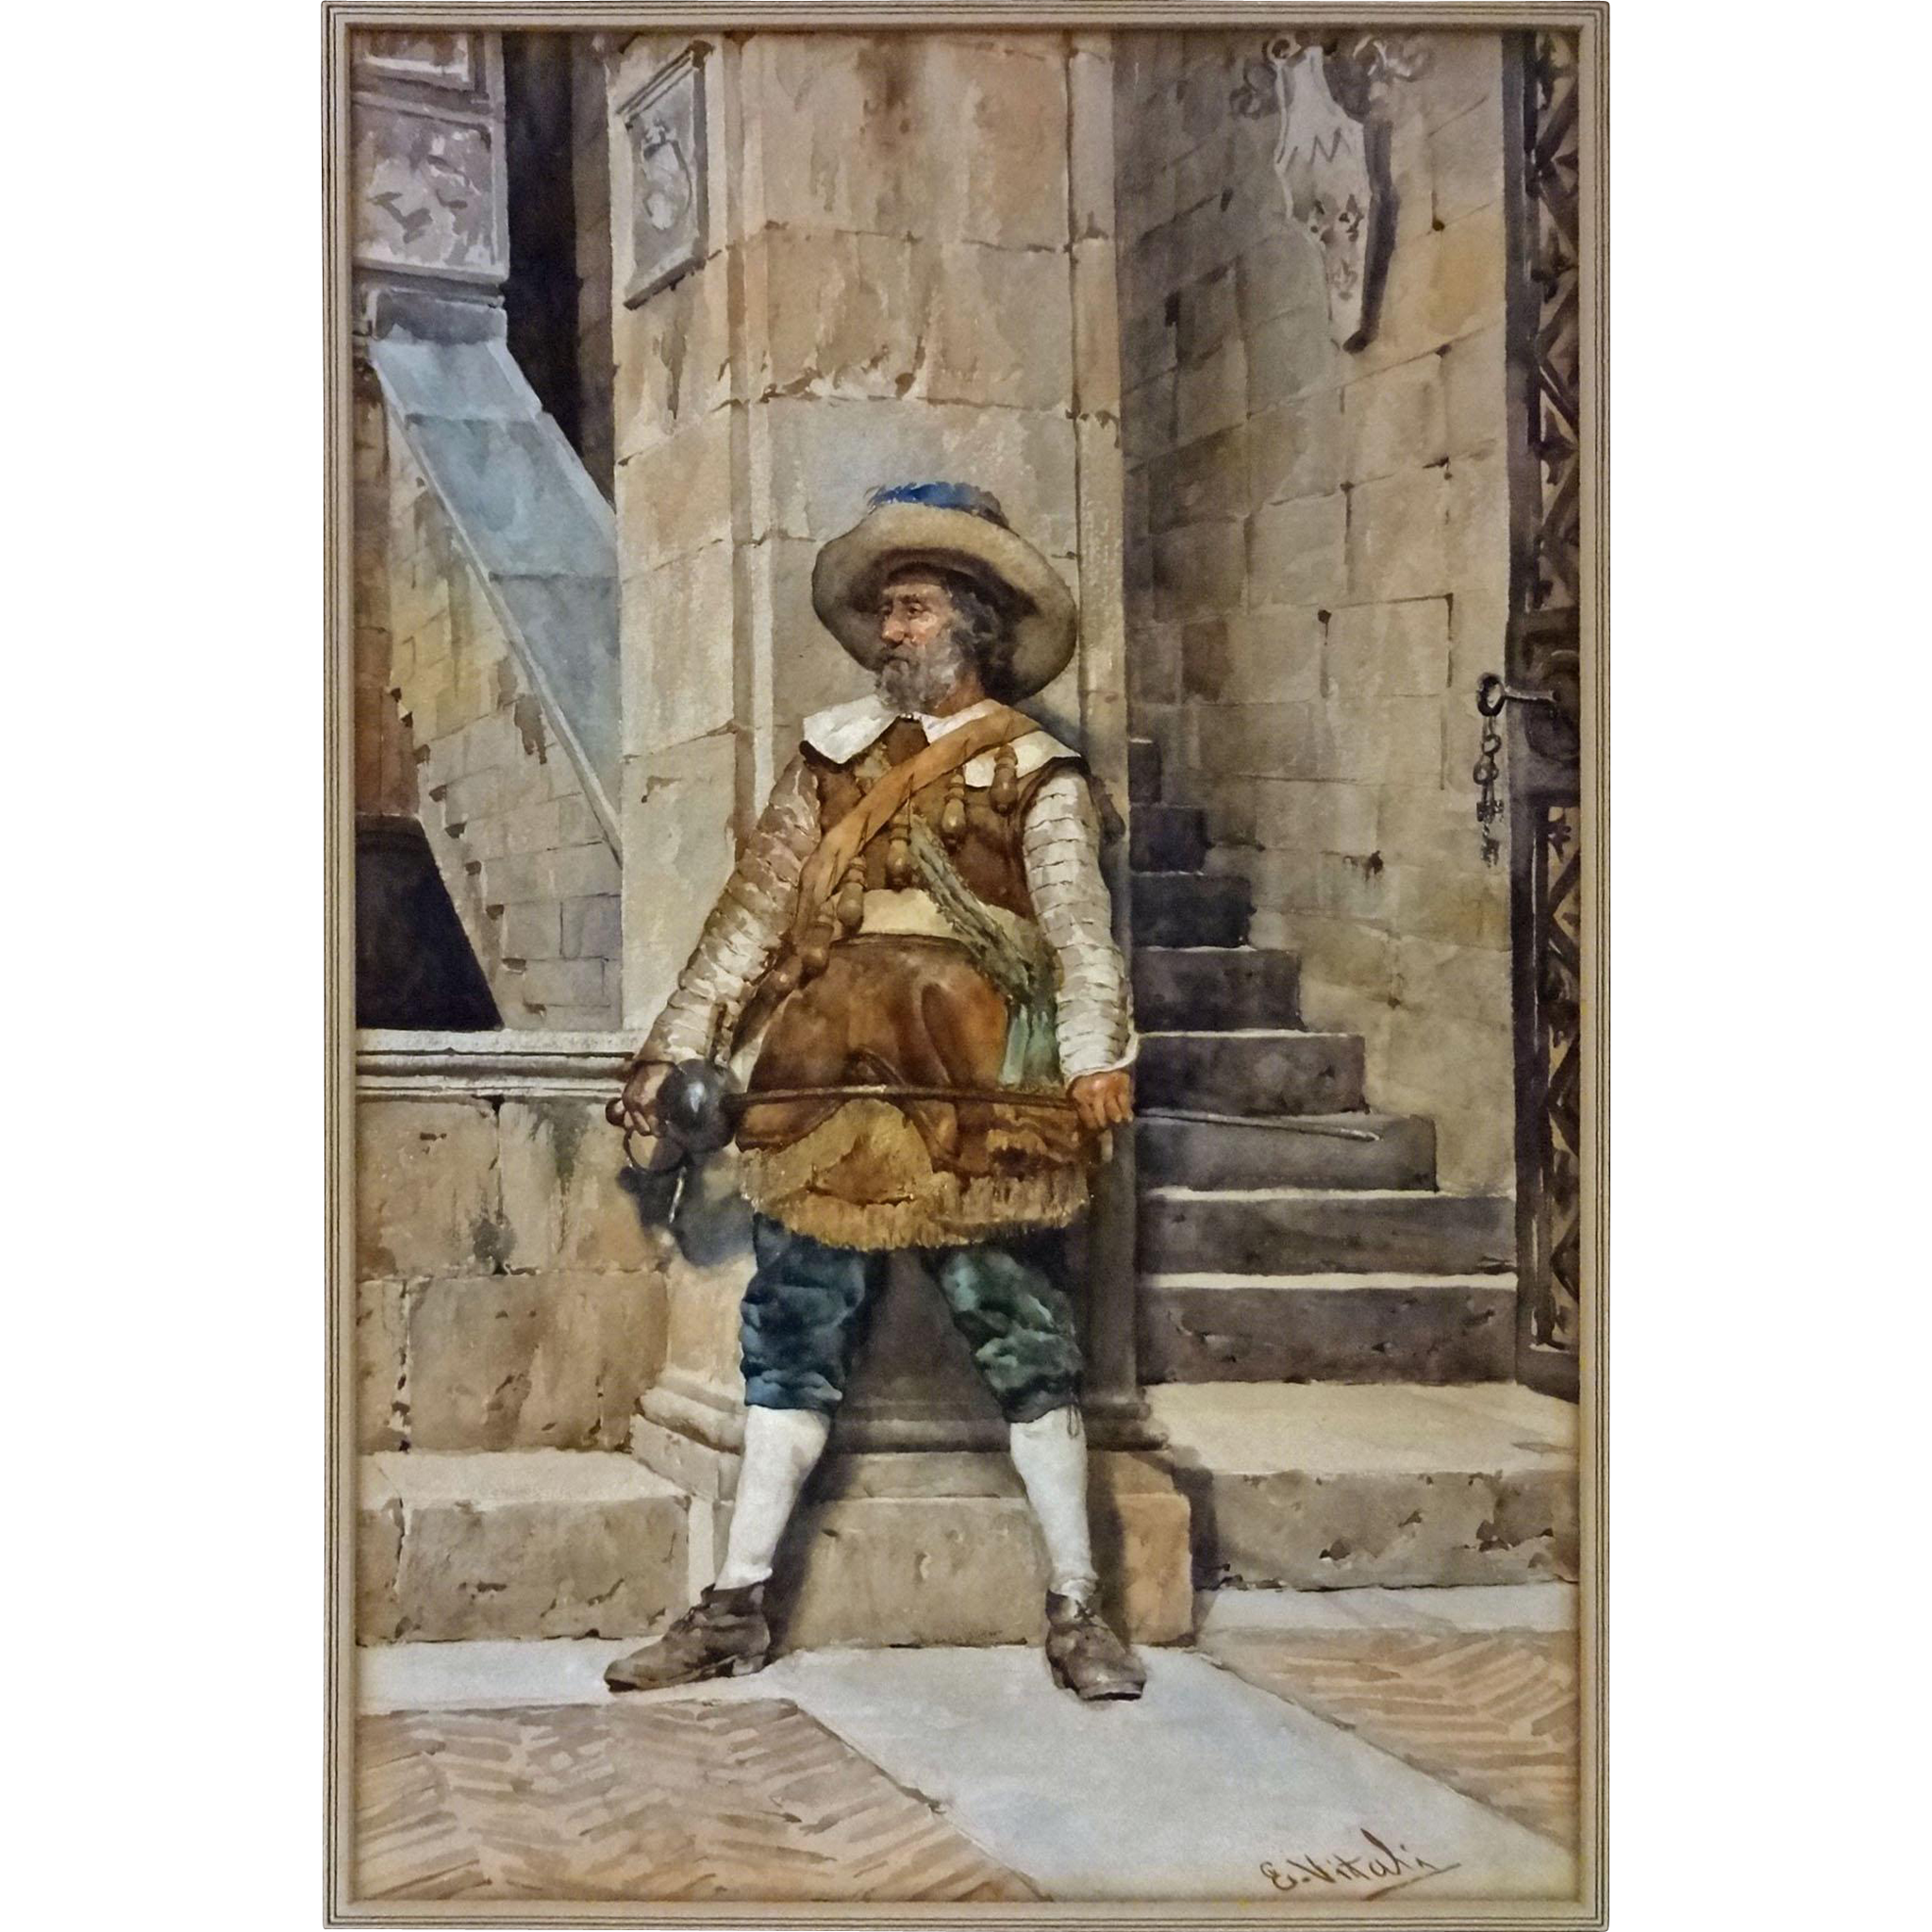 Antique Watercolor Painting Musketeer Castle Interior signed E. Vitali Large - c. 19th Century, Italy